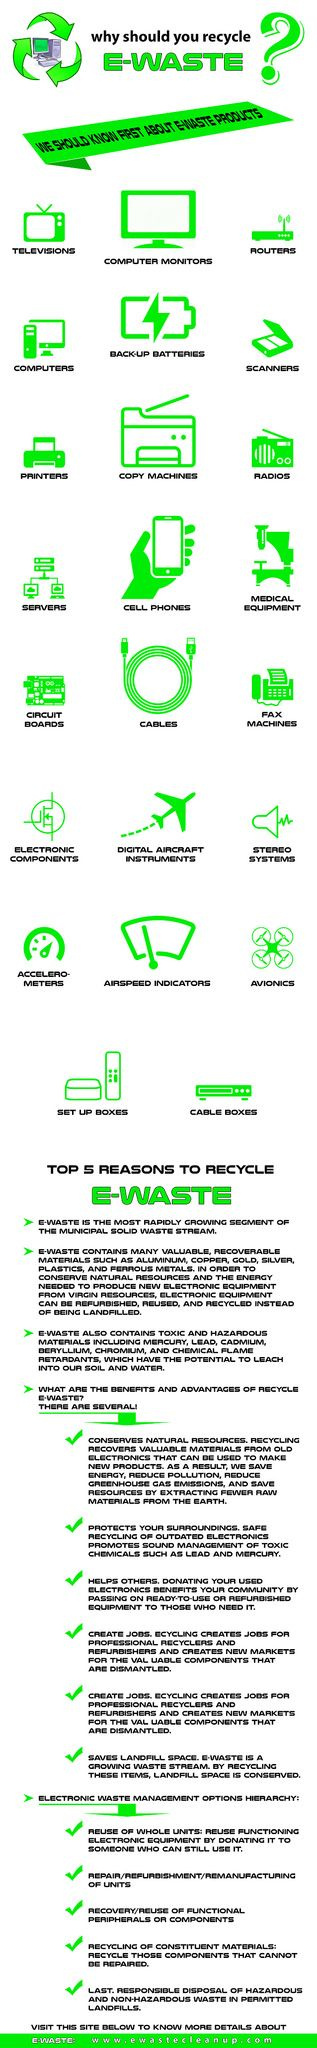 https://flic.kr/p/QreNcR | E waste recycling infographic | Ewaste Cleanup is an electronics waste management and recycling company in Los Angeles, Southern California. We offer free electronics waste recycling, waste disposal, product and data destruction services throughout the country. Get your waste recycled on your own scheduled. See here ewastecleanup.com